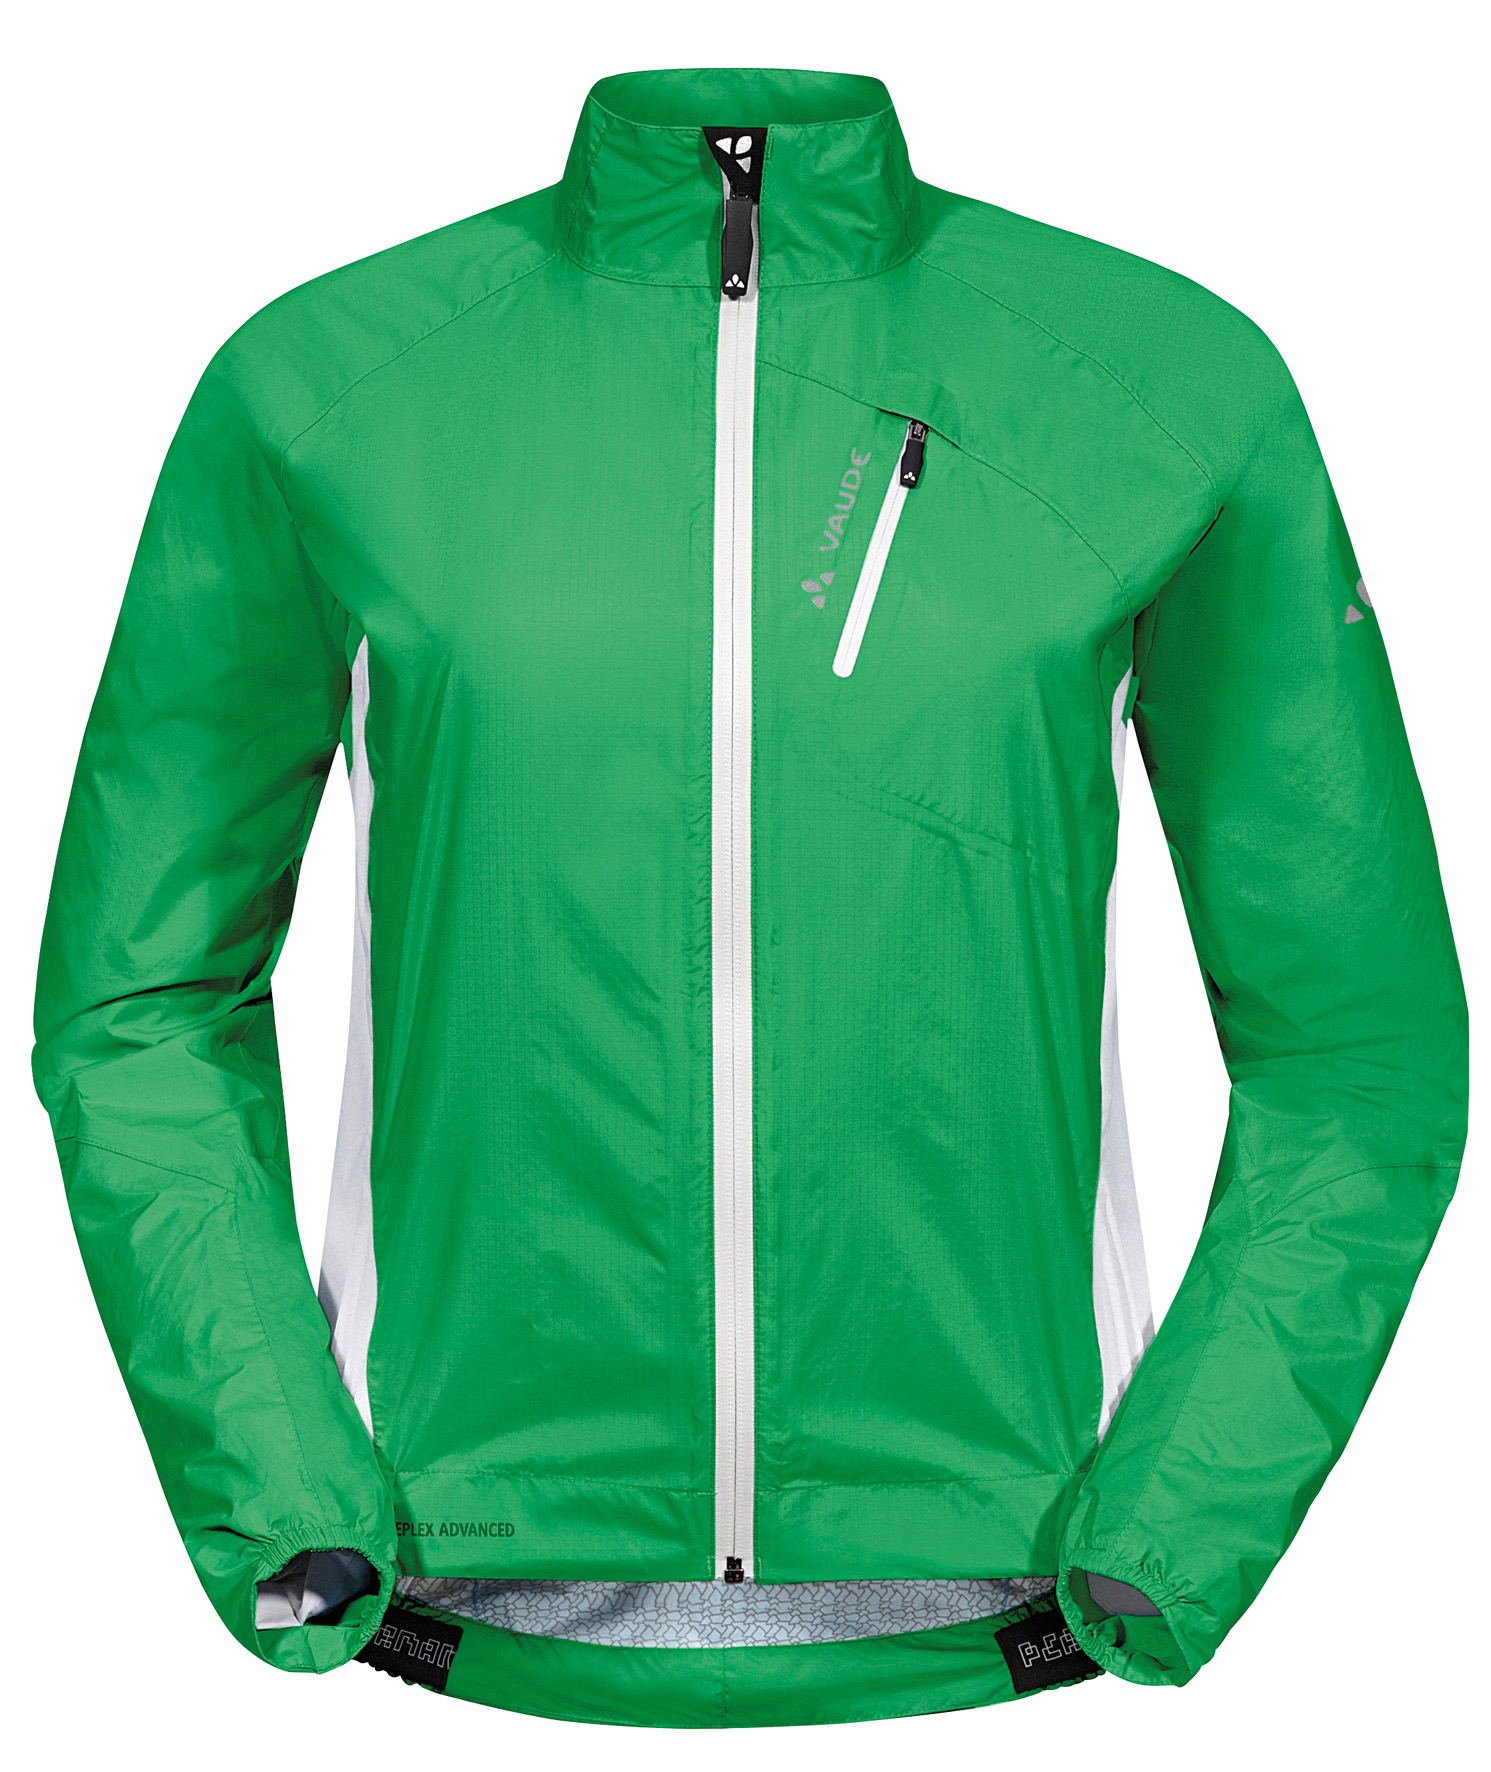 Women´s Spray Jacket IV grasshopper Größe 36 - schneider-sports